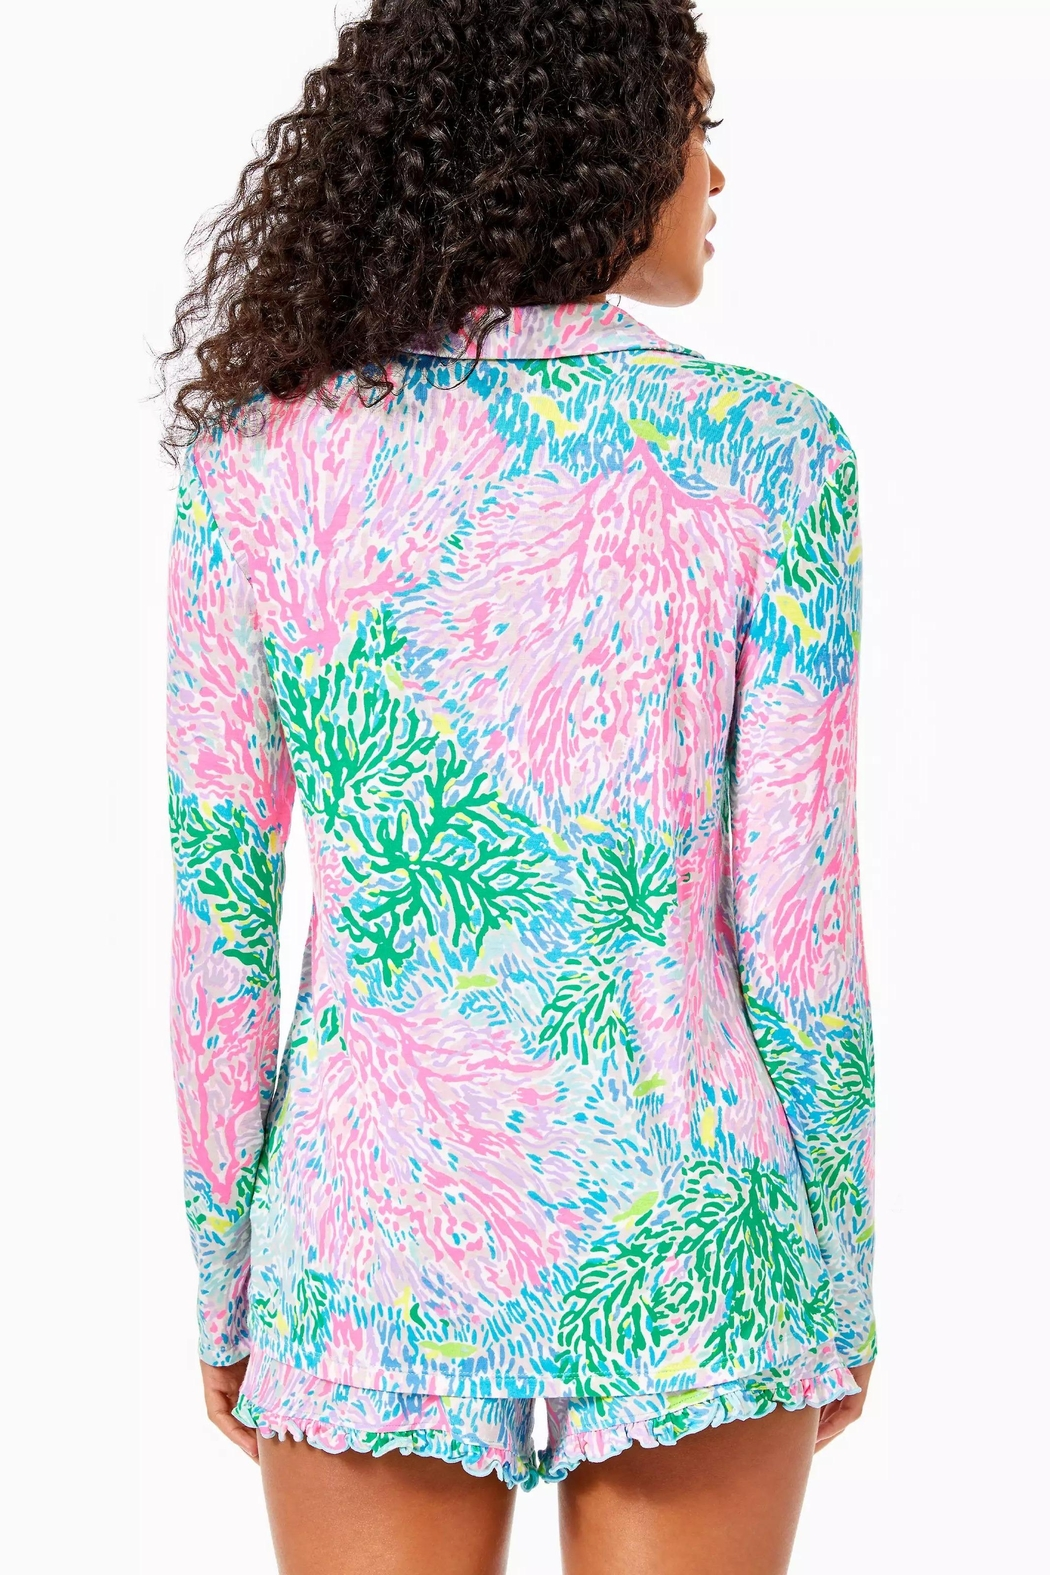 Lilly Pulitzer Pj Knit-Button-Up Top - Front Full Image